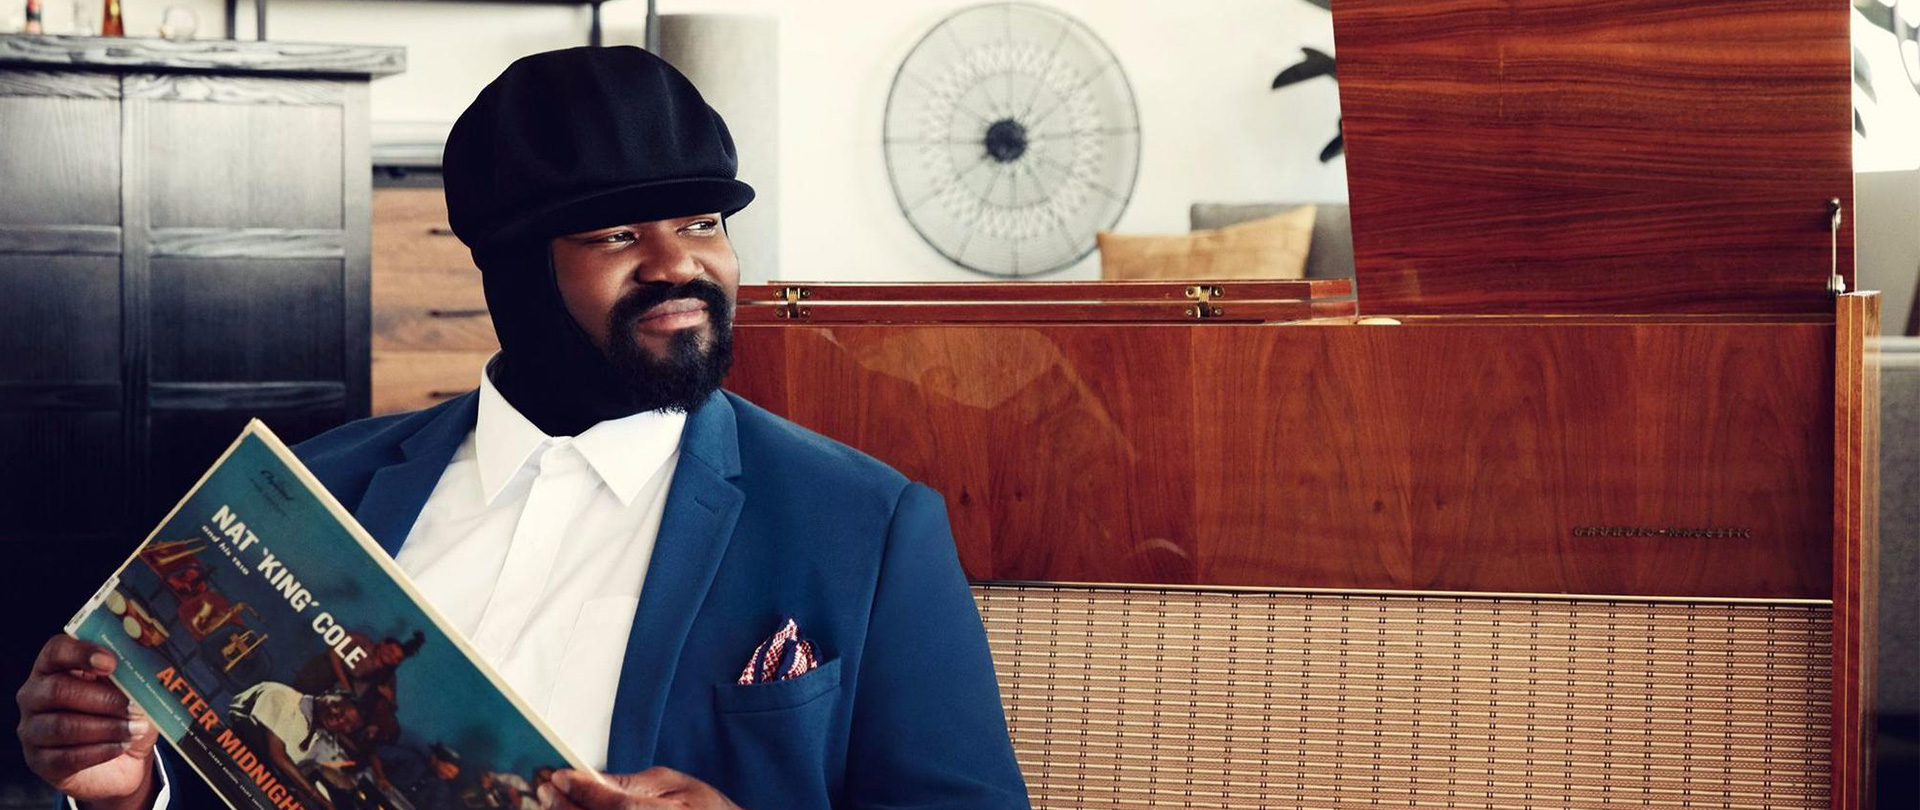 SFJAZZ Presents Gregory Porter with Magik*Magik Orchestra, conducted by Vince Mendoza live in concert at Davies Symphony Hall on August 18th, 2018.